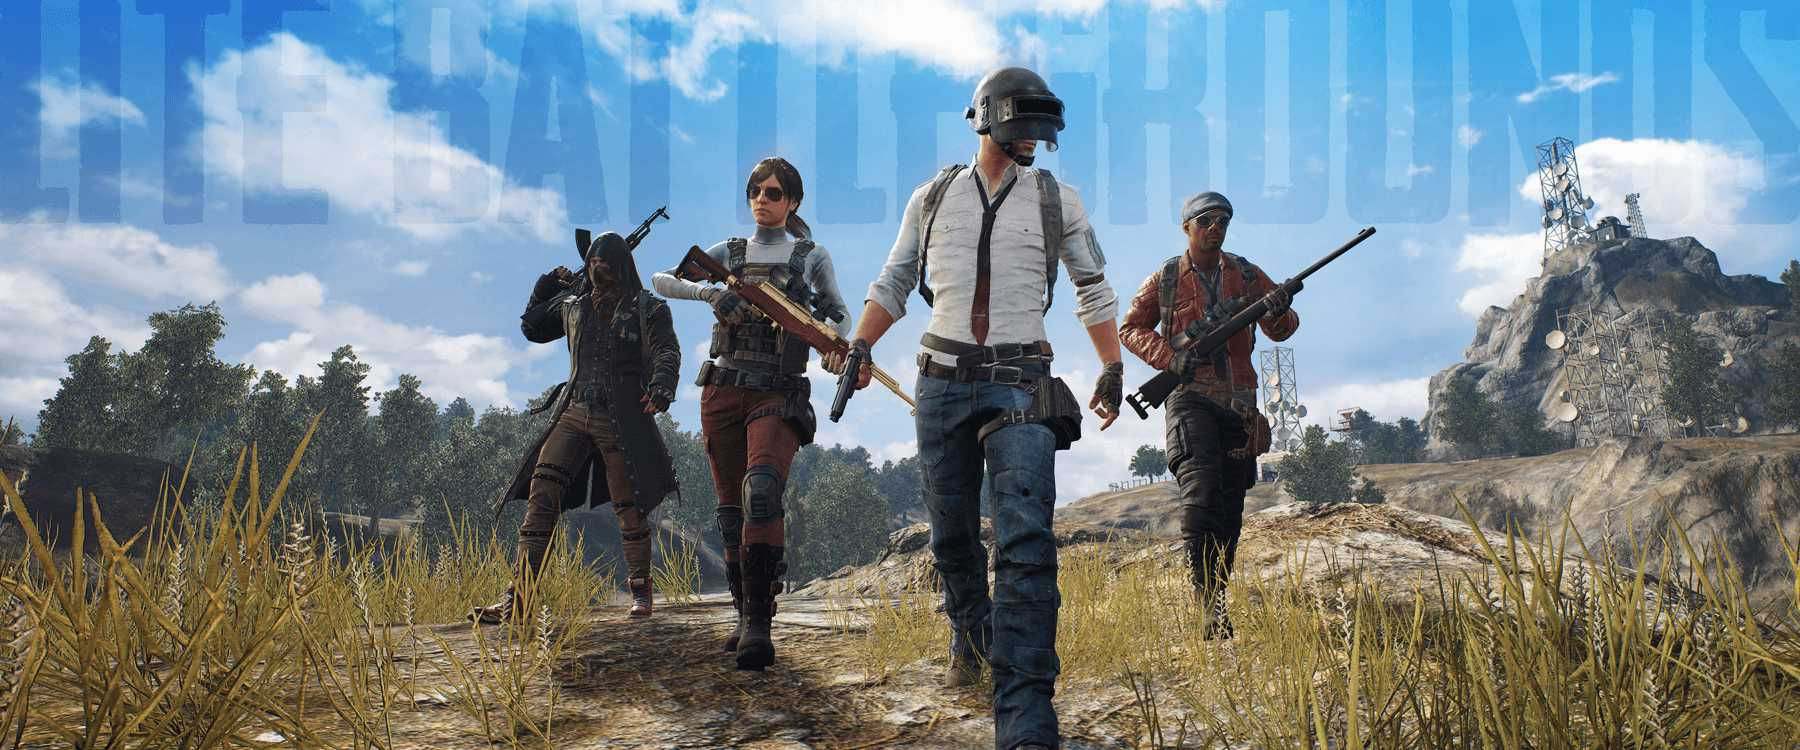 PUBG PC Lite Launched in India: How to Download it Right Now!